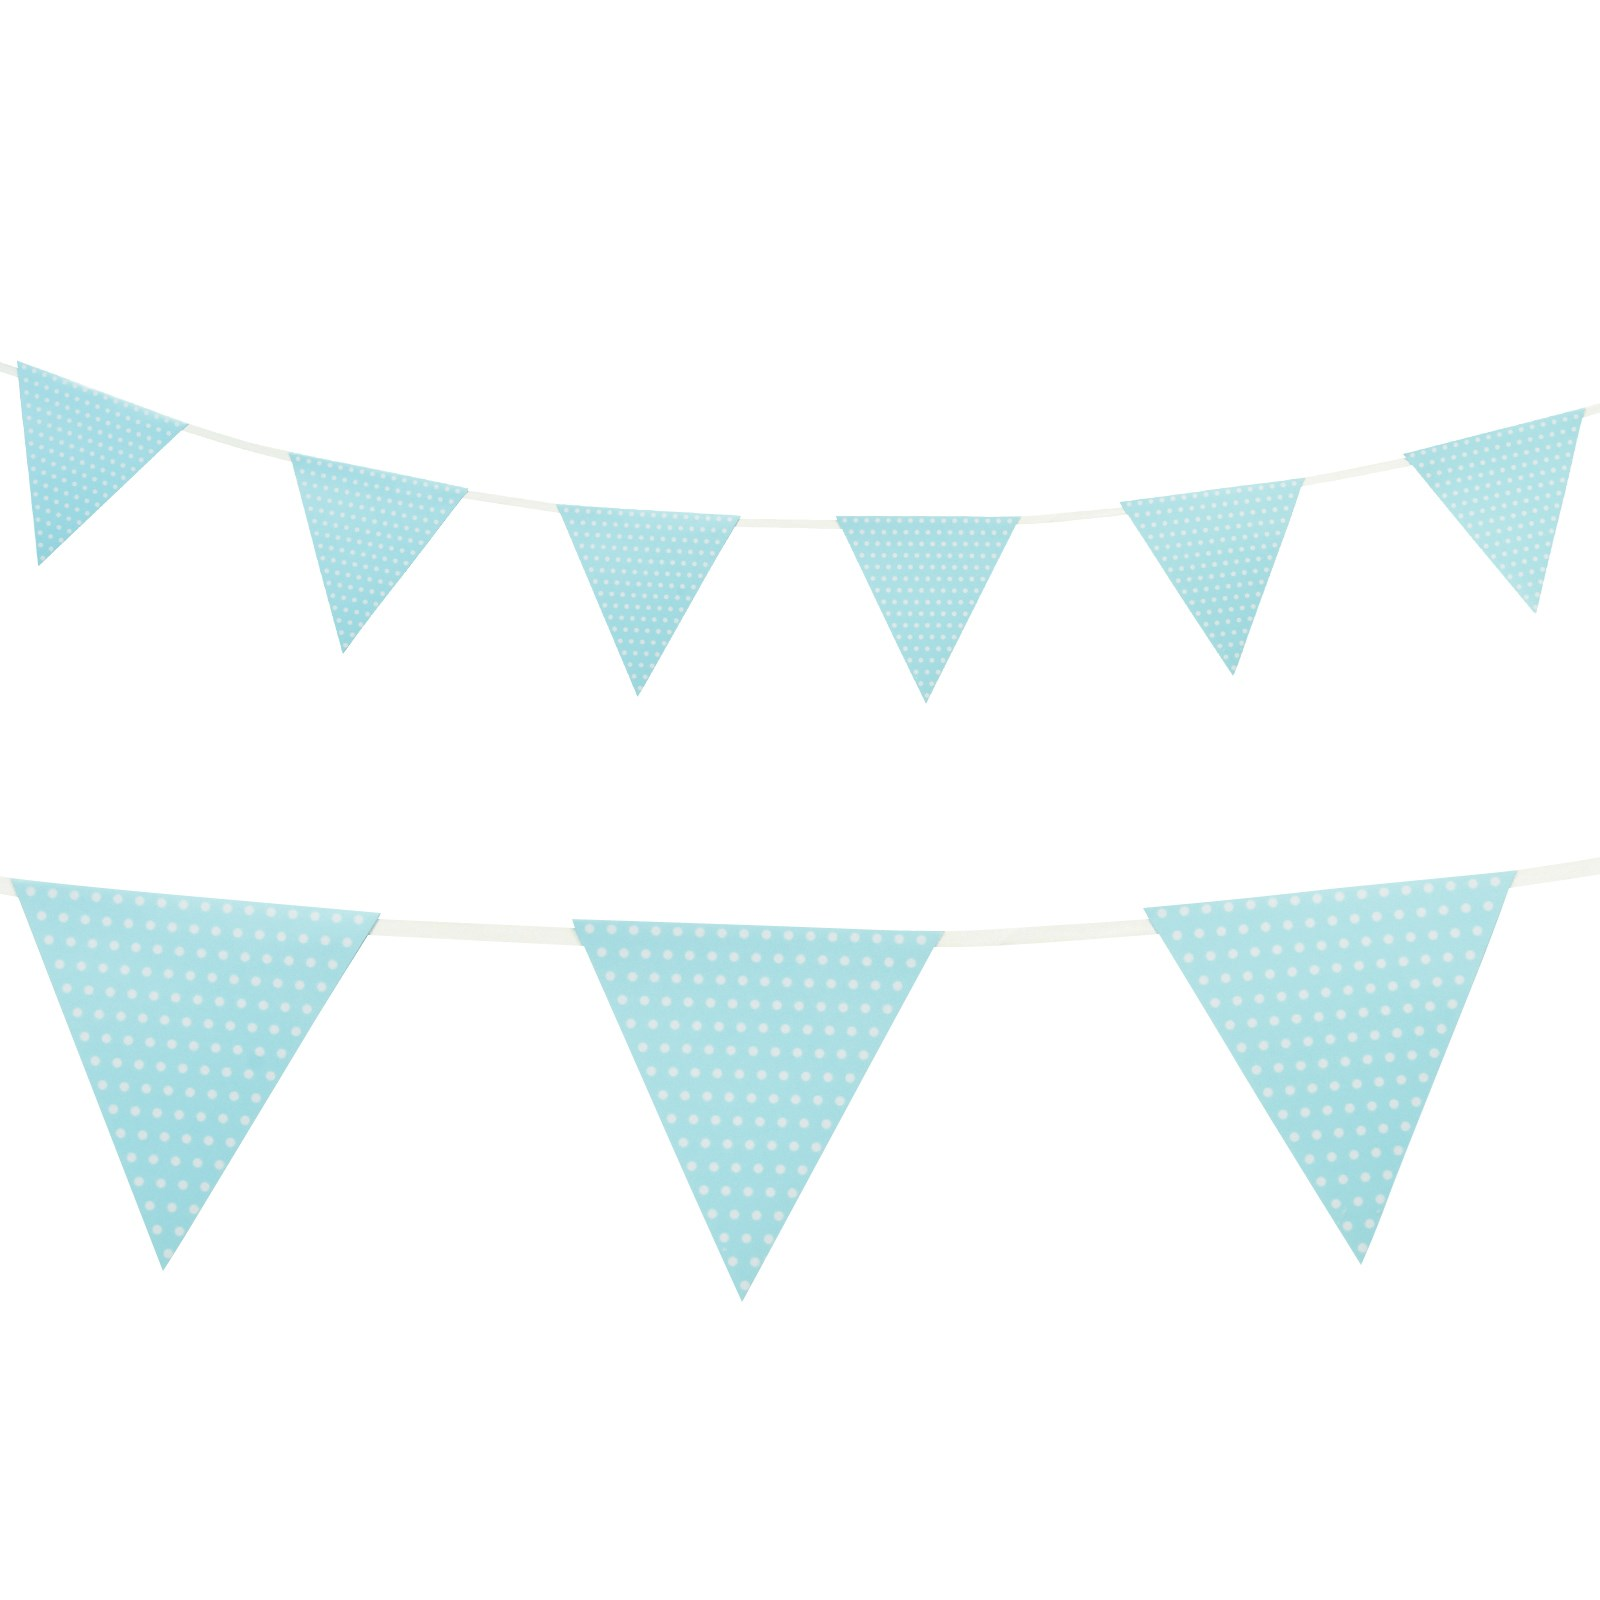 indoor first birthday picture ideas - Pastel Blue with Polka Dots Paper Flag Banner 1